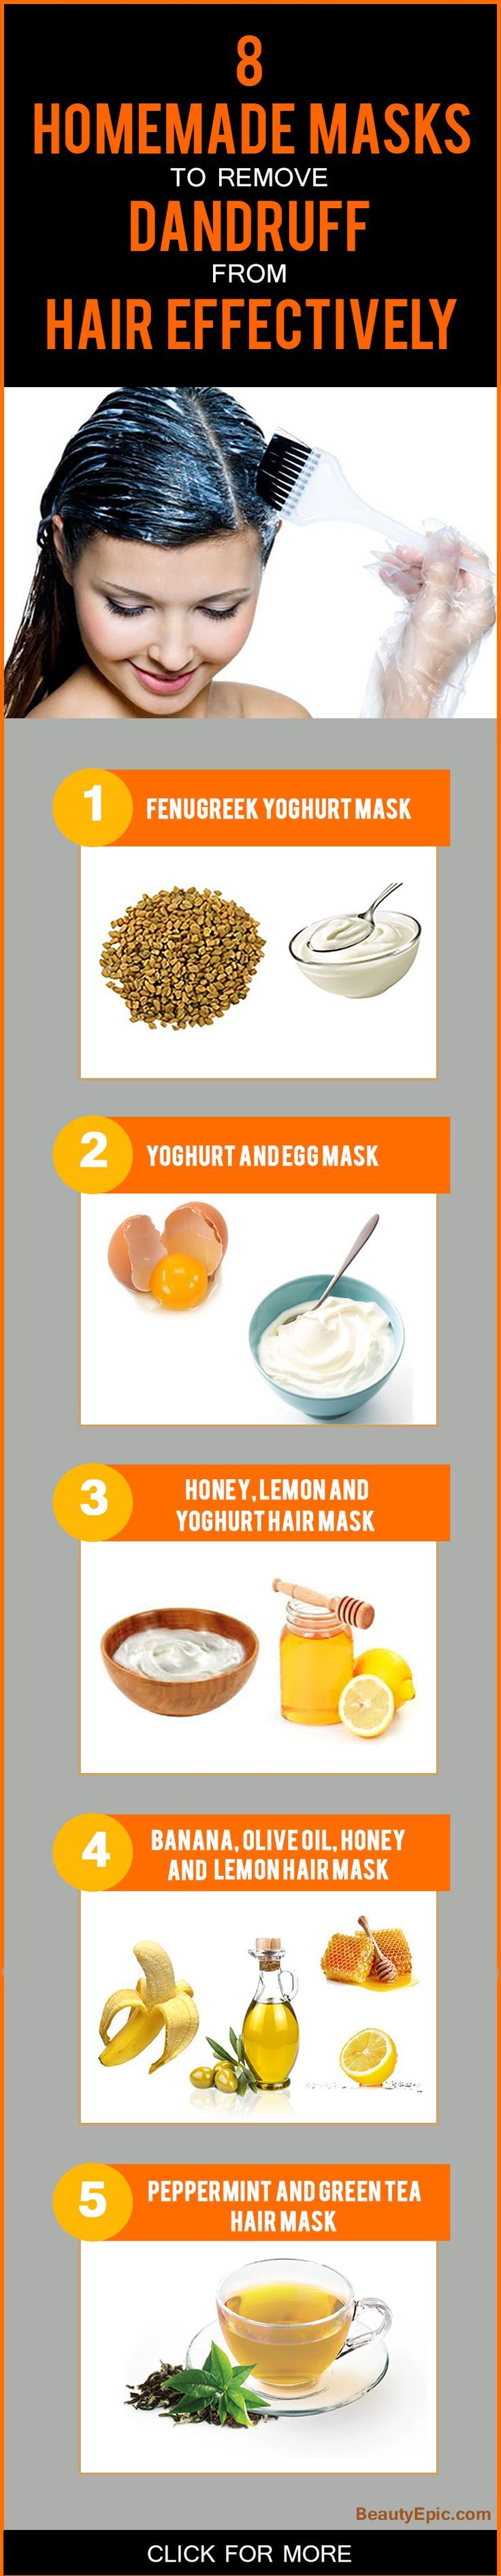 8 Homemade Masks To Remove Dandruff From Hair Effectively